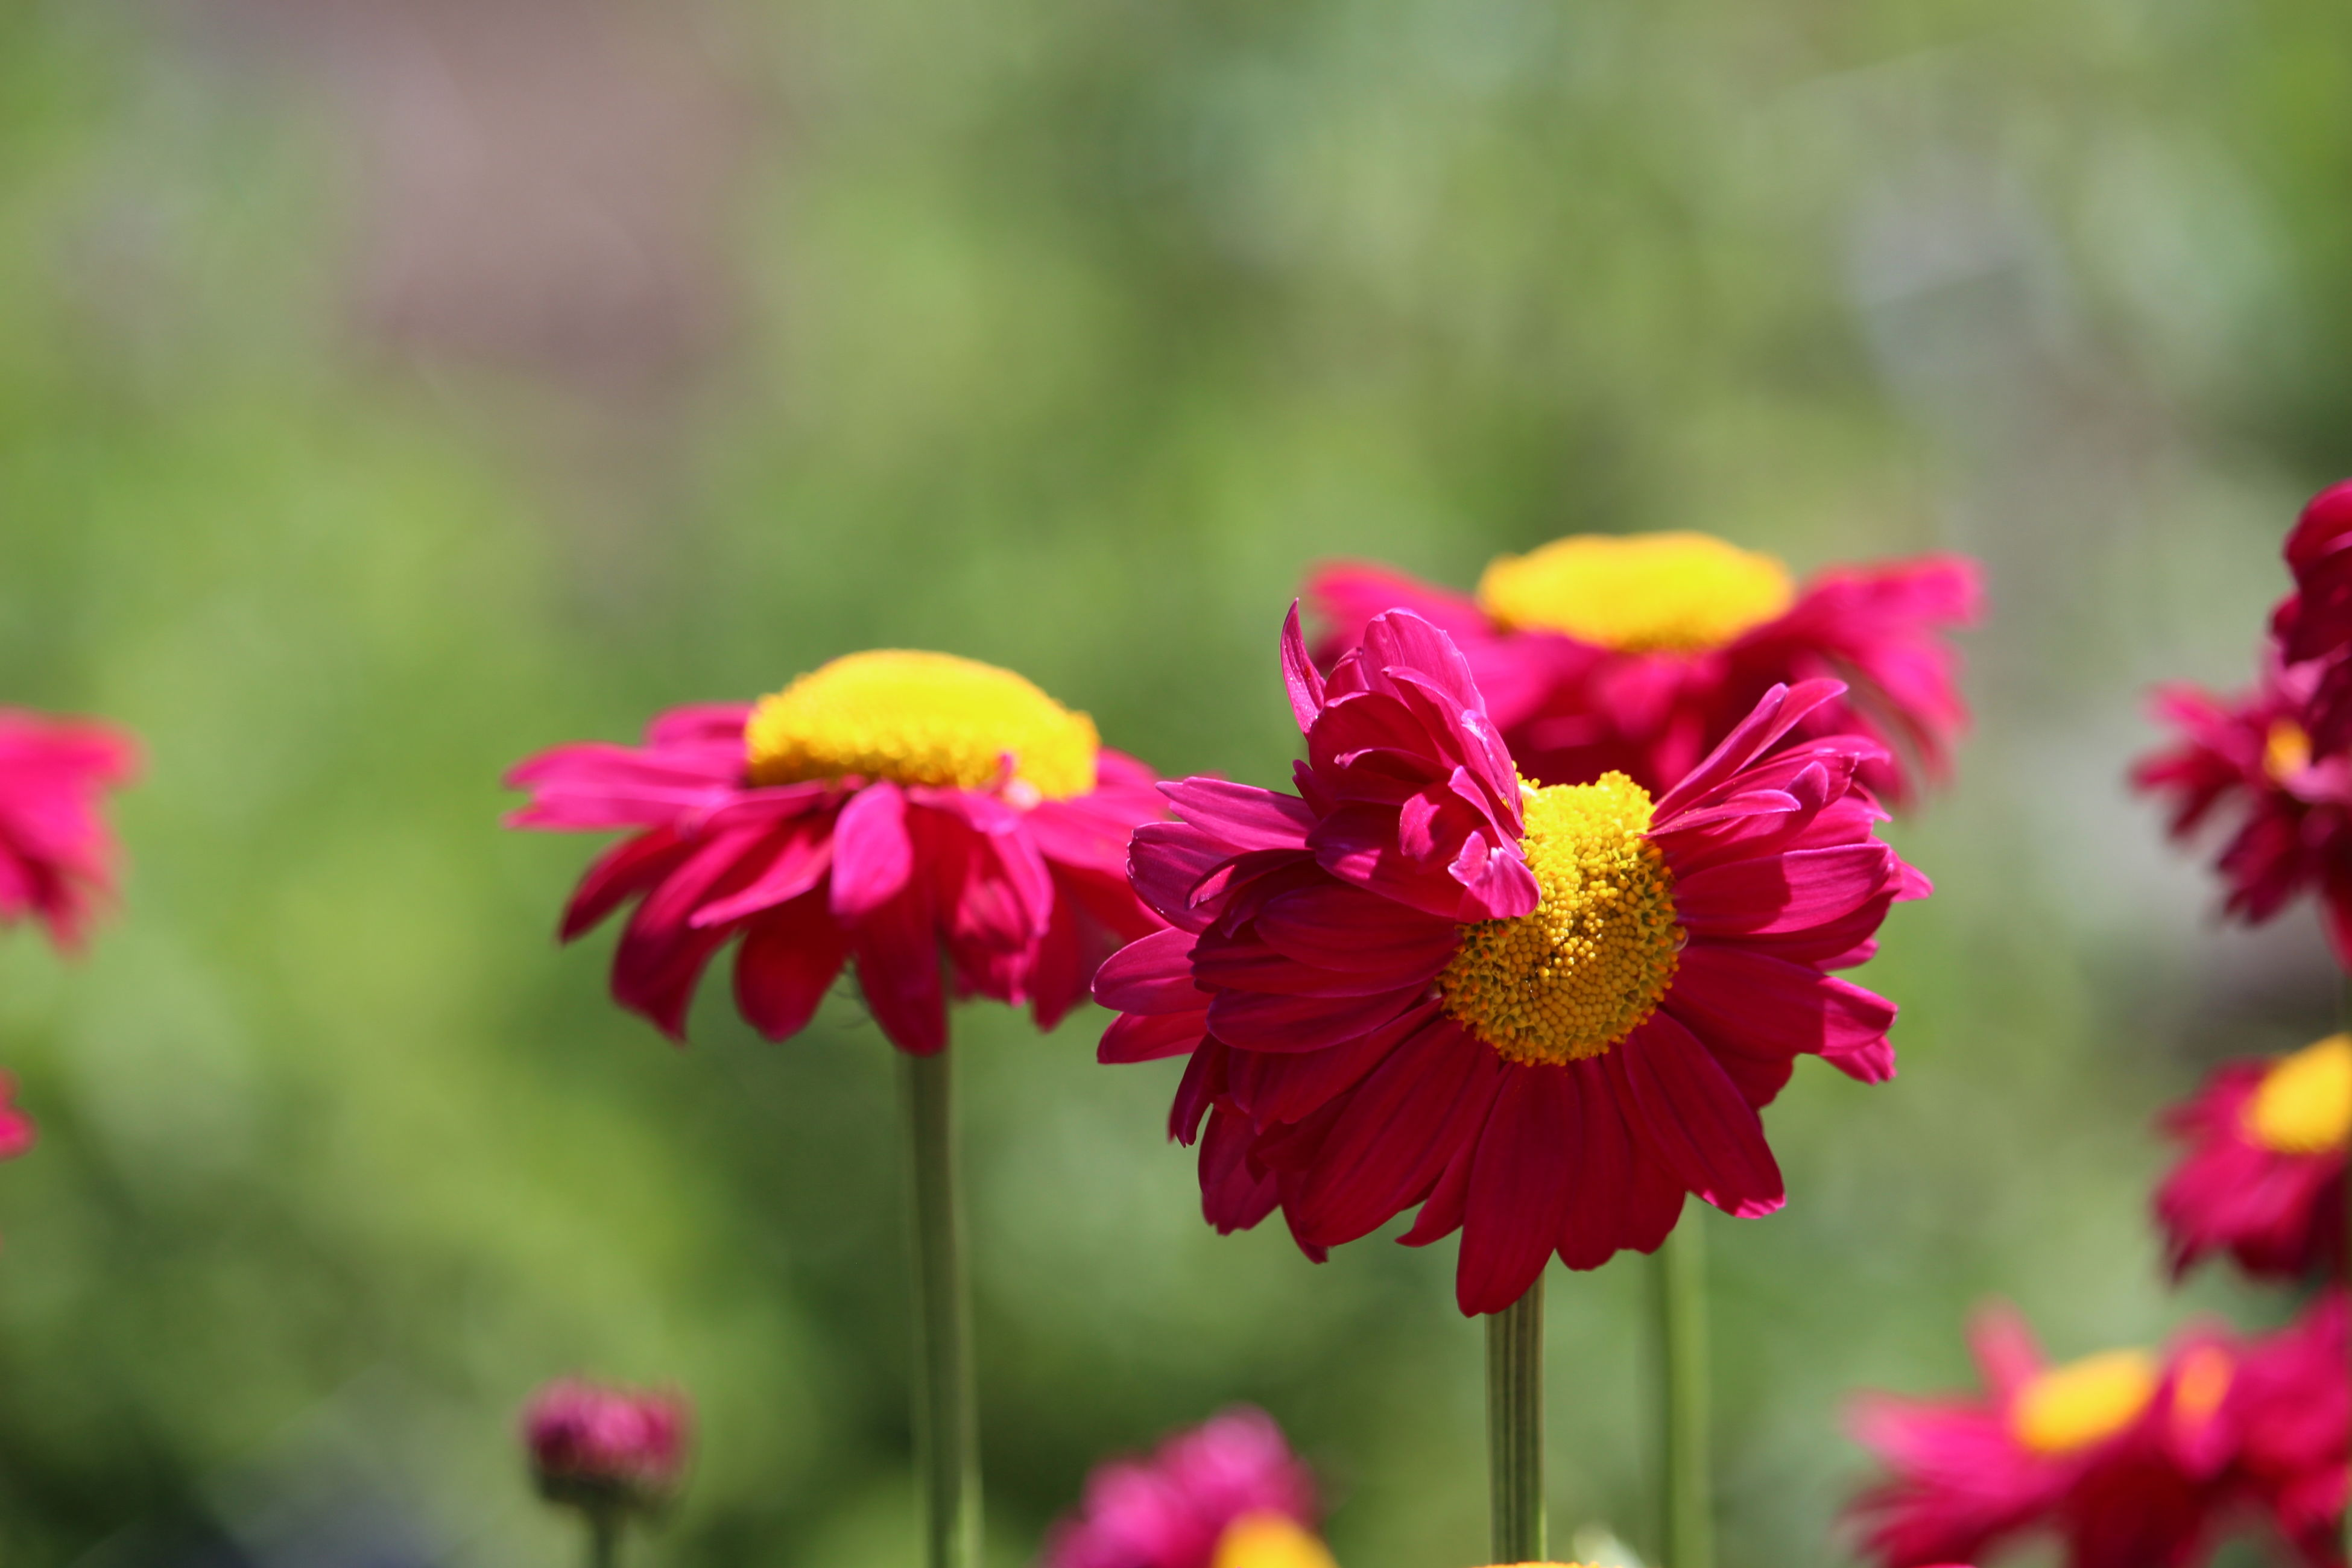 flower, petal, fragility, beauty in nature, growth, nature, freshness, flower head, plant, yellow, blooming, no people, focus on foreground, red, day, outdoors, close-up